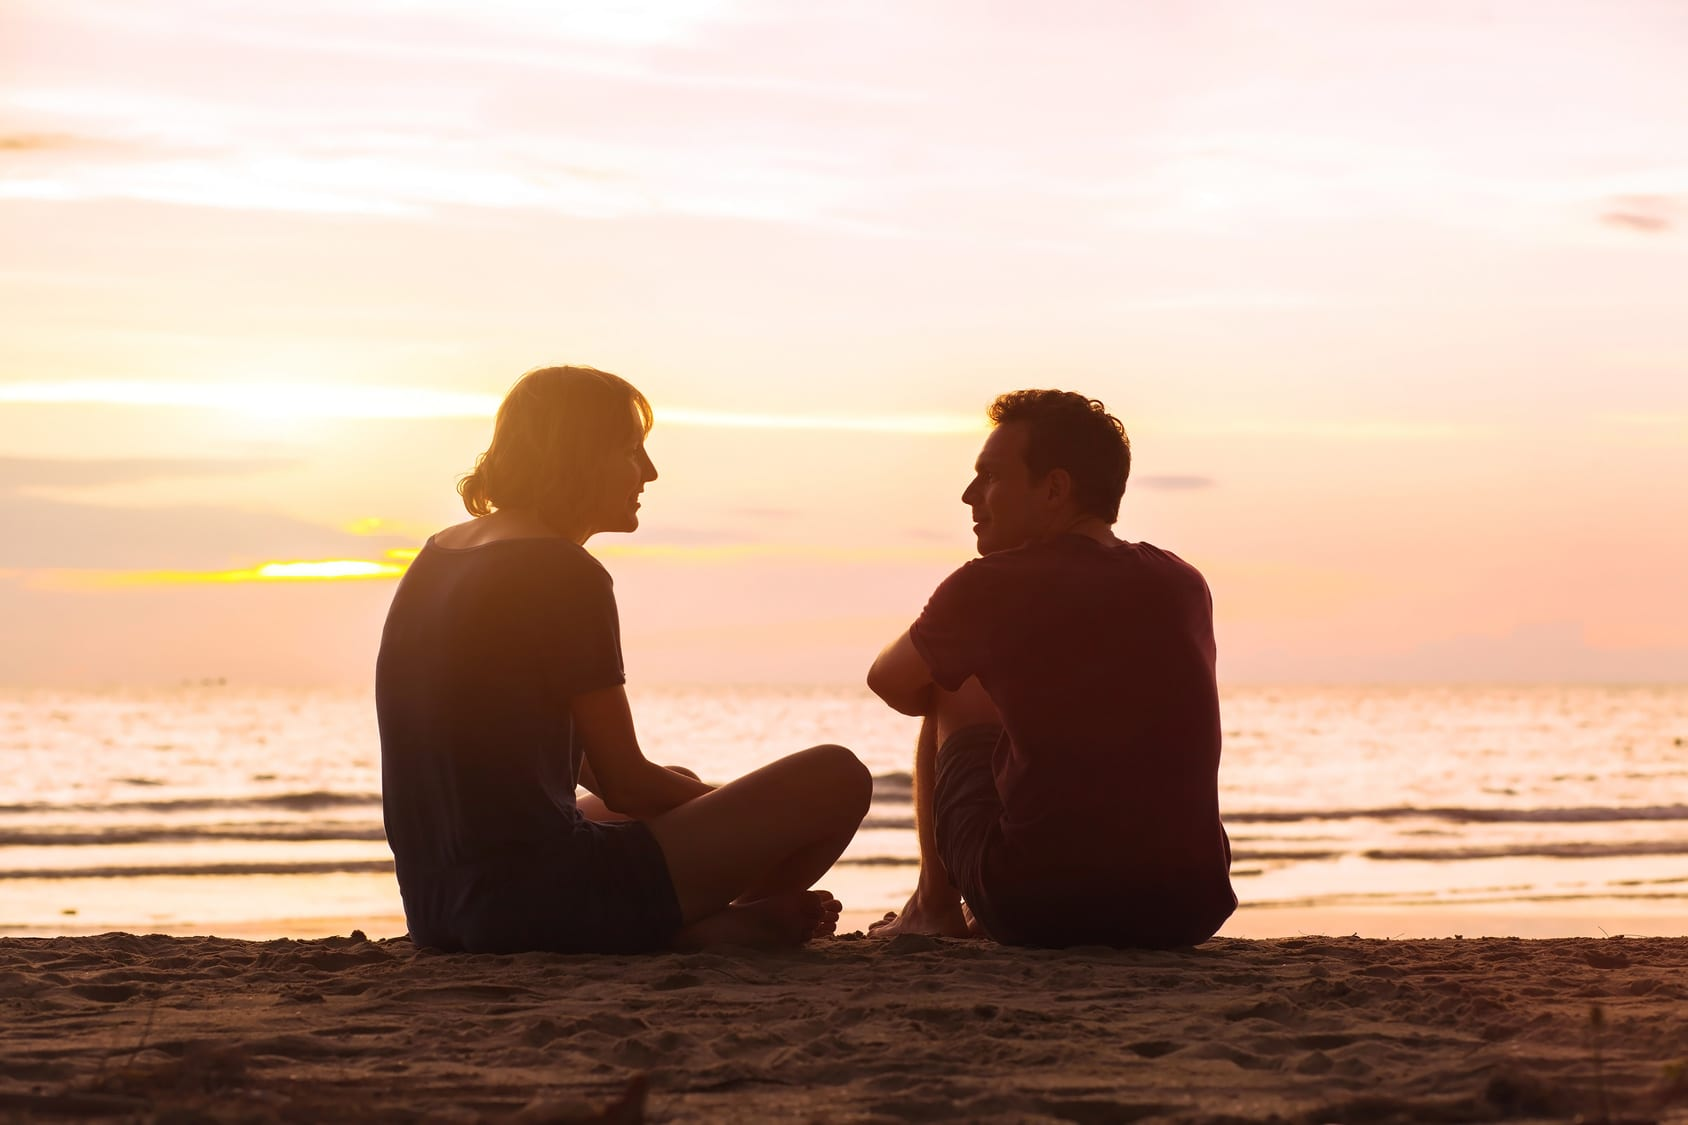 s, CA Marriage Counseling Marriage Counselor in s, Couples Therapist s Couples therapy for communication in beverly hills california santa monica california premarital counseling expert marriage counselor